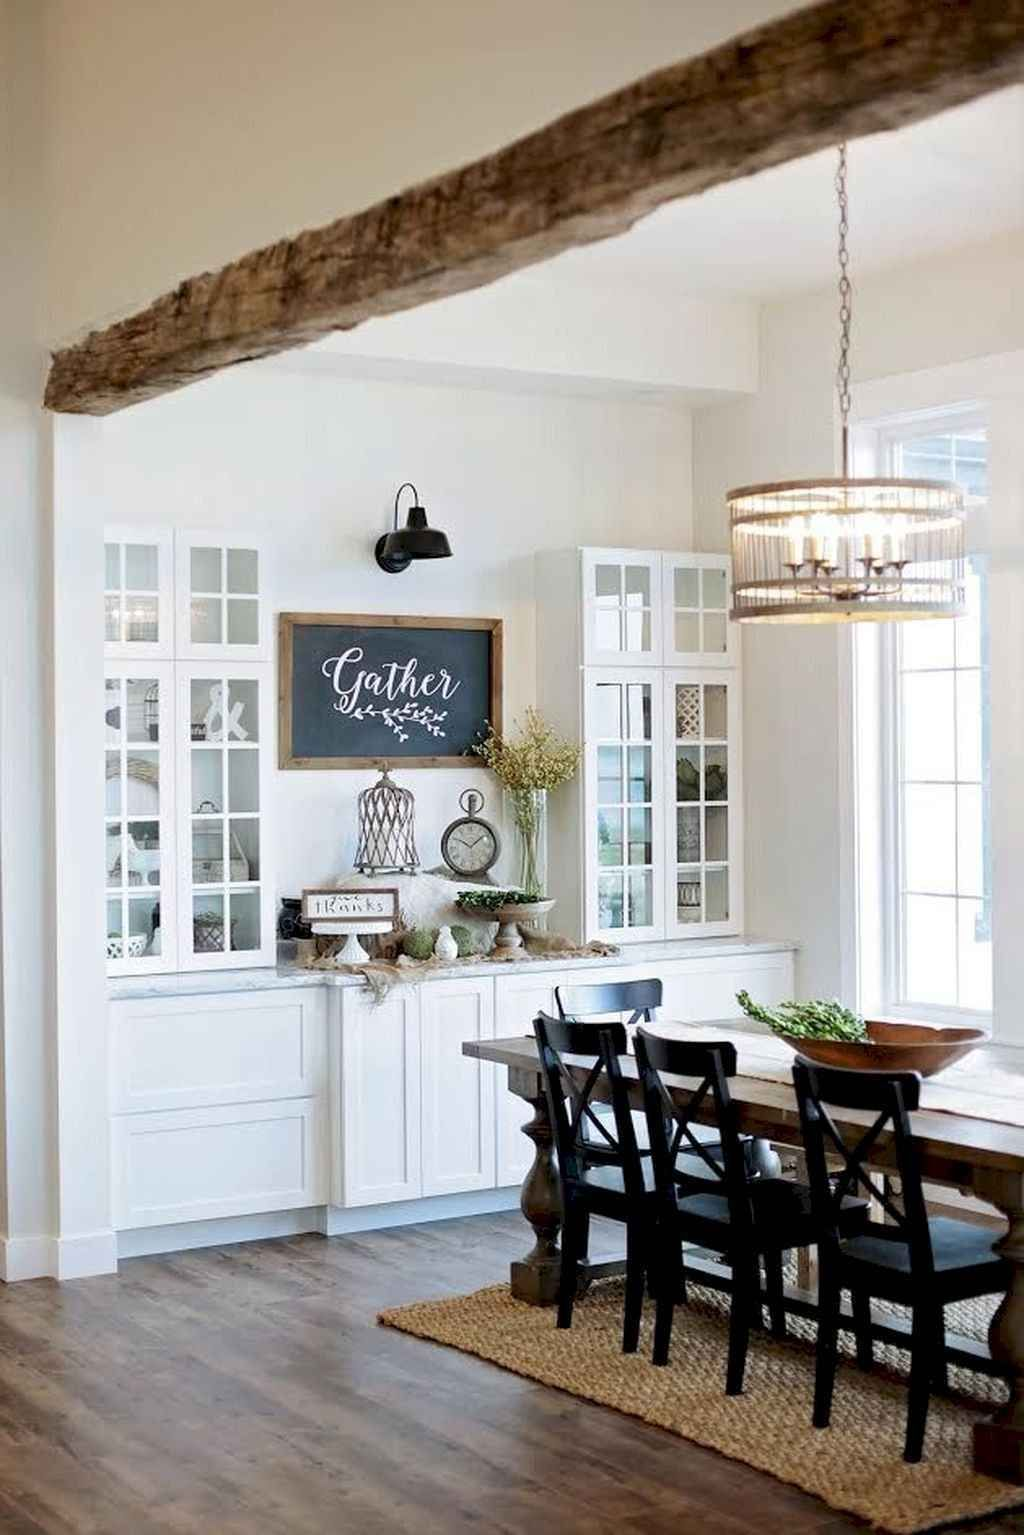 19 Lasting Farmhouse Dining Room Table and Decor Ideas - DoMakeover.com